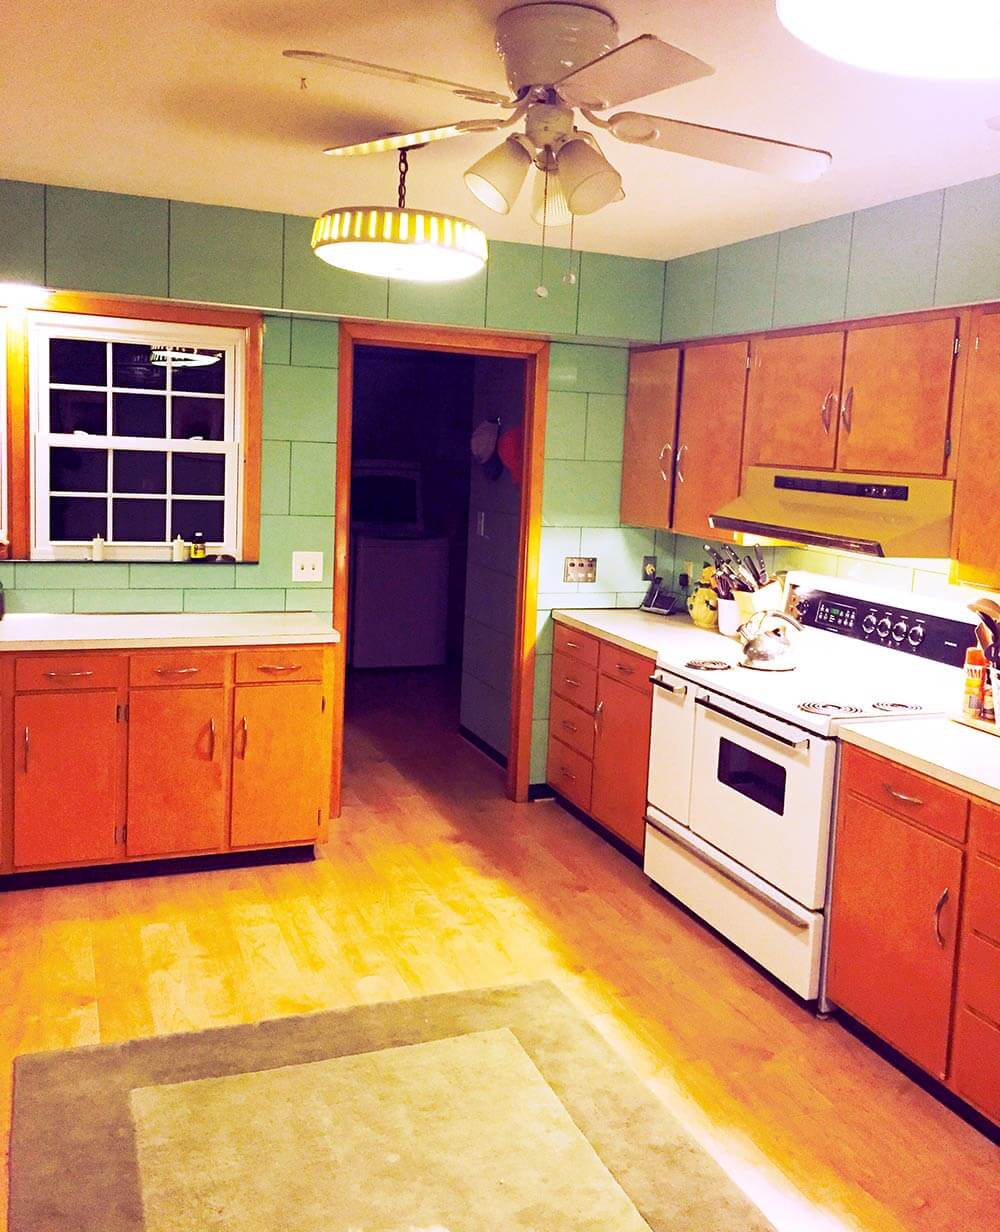 Retro Kitchen Design You Never Seen Before: Create A 1940s Style Kitchen